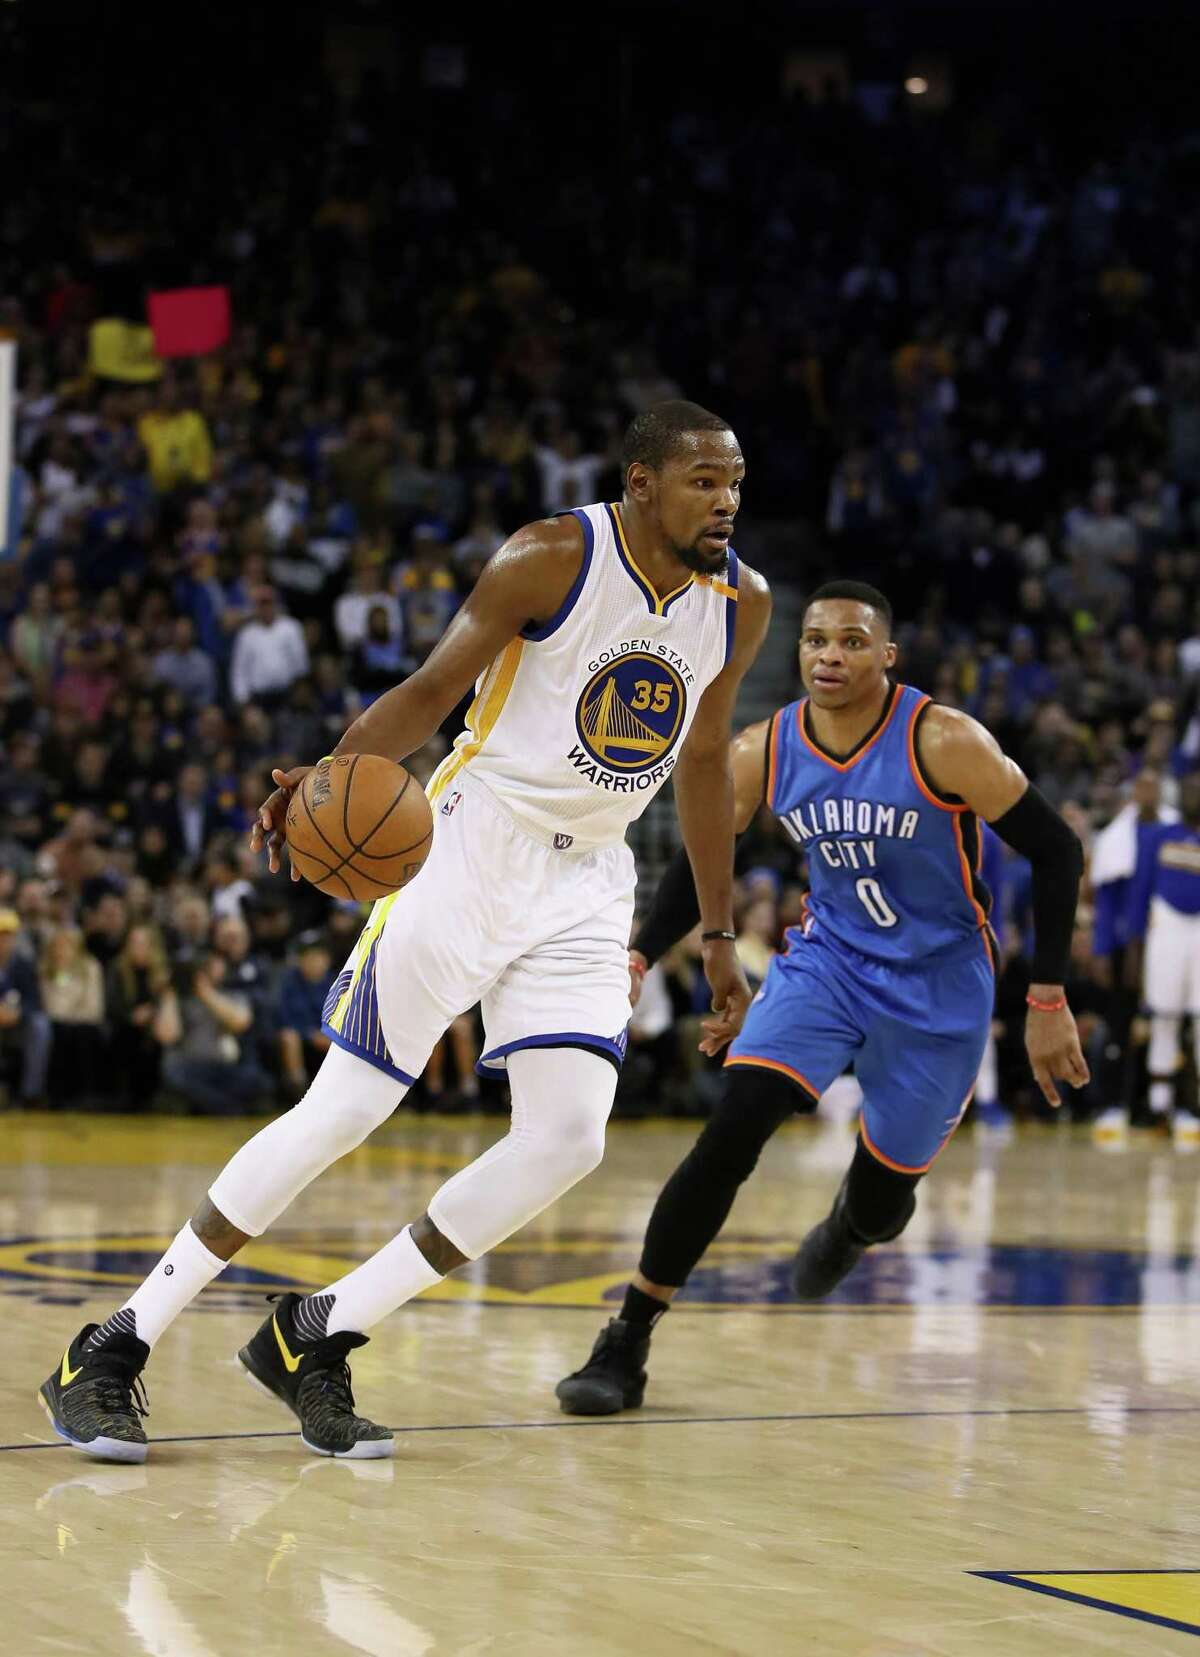 OAKLAND, CA - JANUARY 18: Kevin Durant #35 of the Golden State Warriors dribbles past Russell Westbrook #0 of the Oklahoma City Thunder at ORACLE Arena on January 18, 2017 in Oakland, California. NOTE TO USER: User expressly acknowledges and agrees that, by downloading and or using this photograph, User is consenting to the terms and conditions of the Getty Images License Agreement.